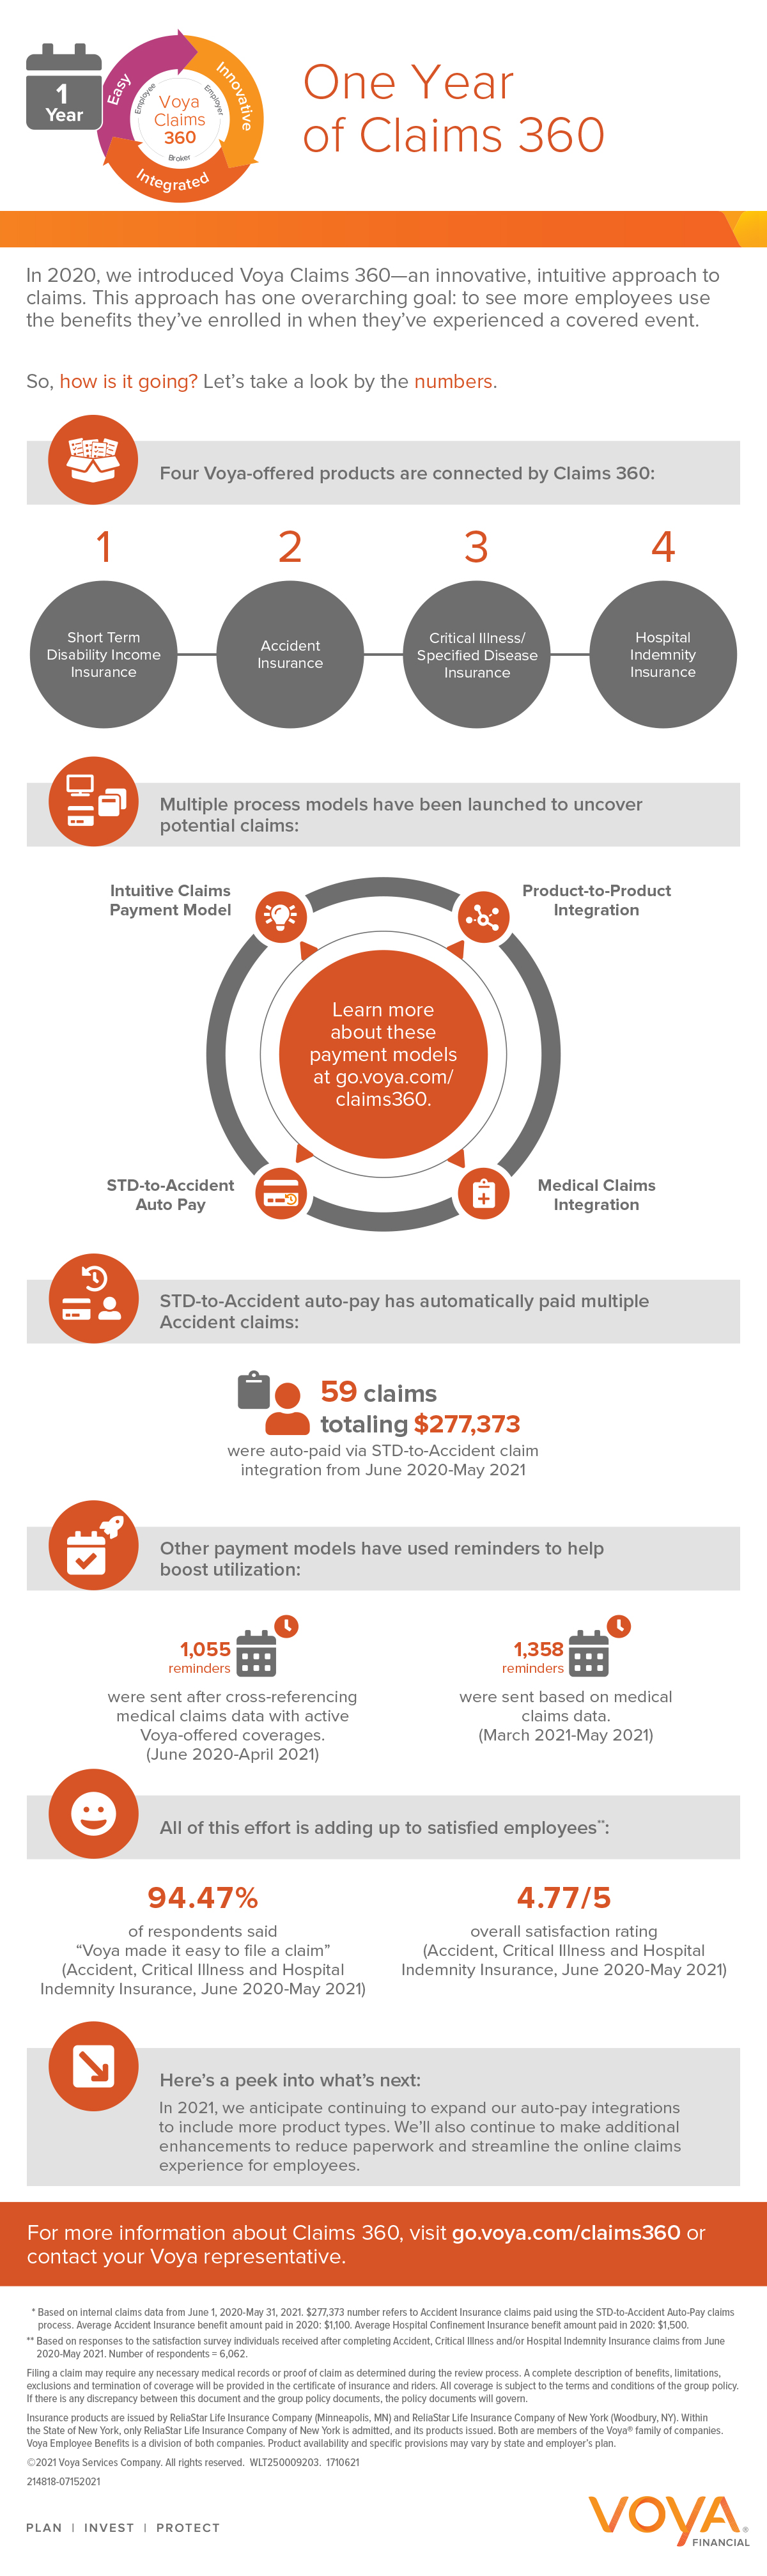 Infographic overview of Claims 360 data points